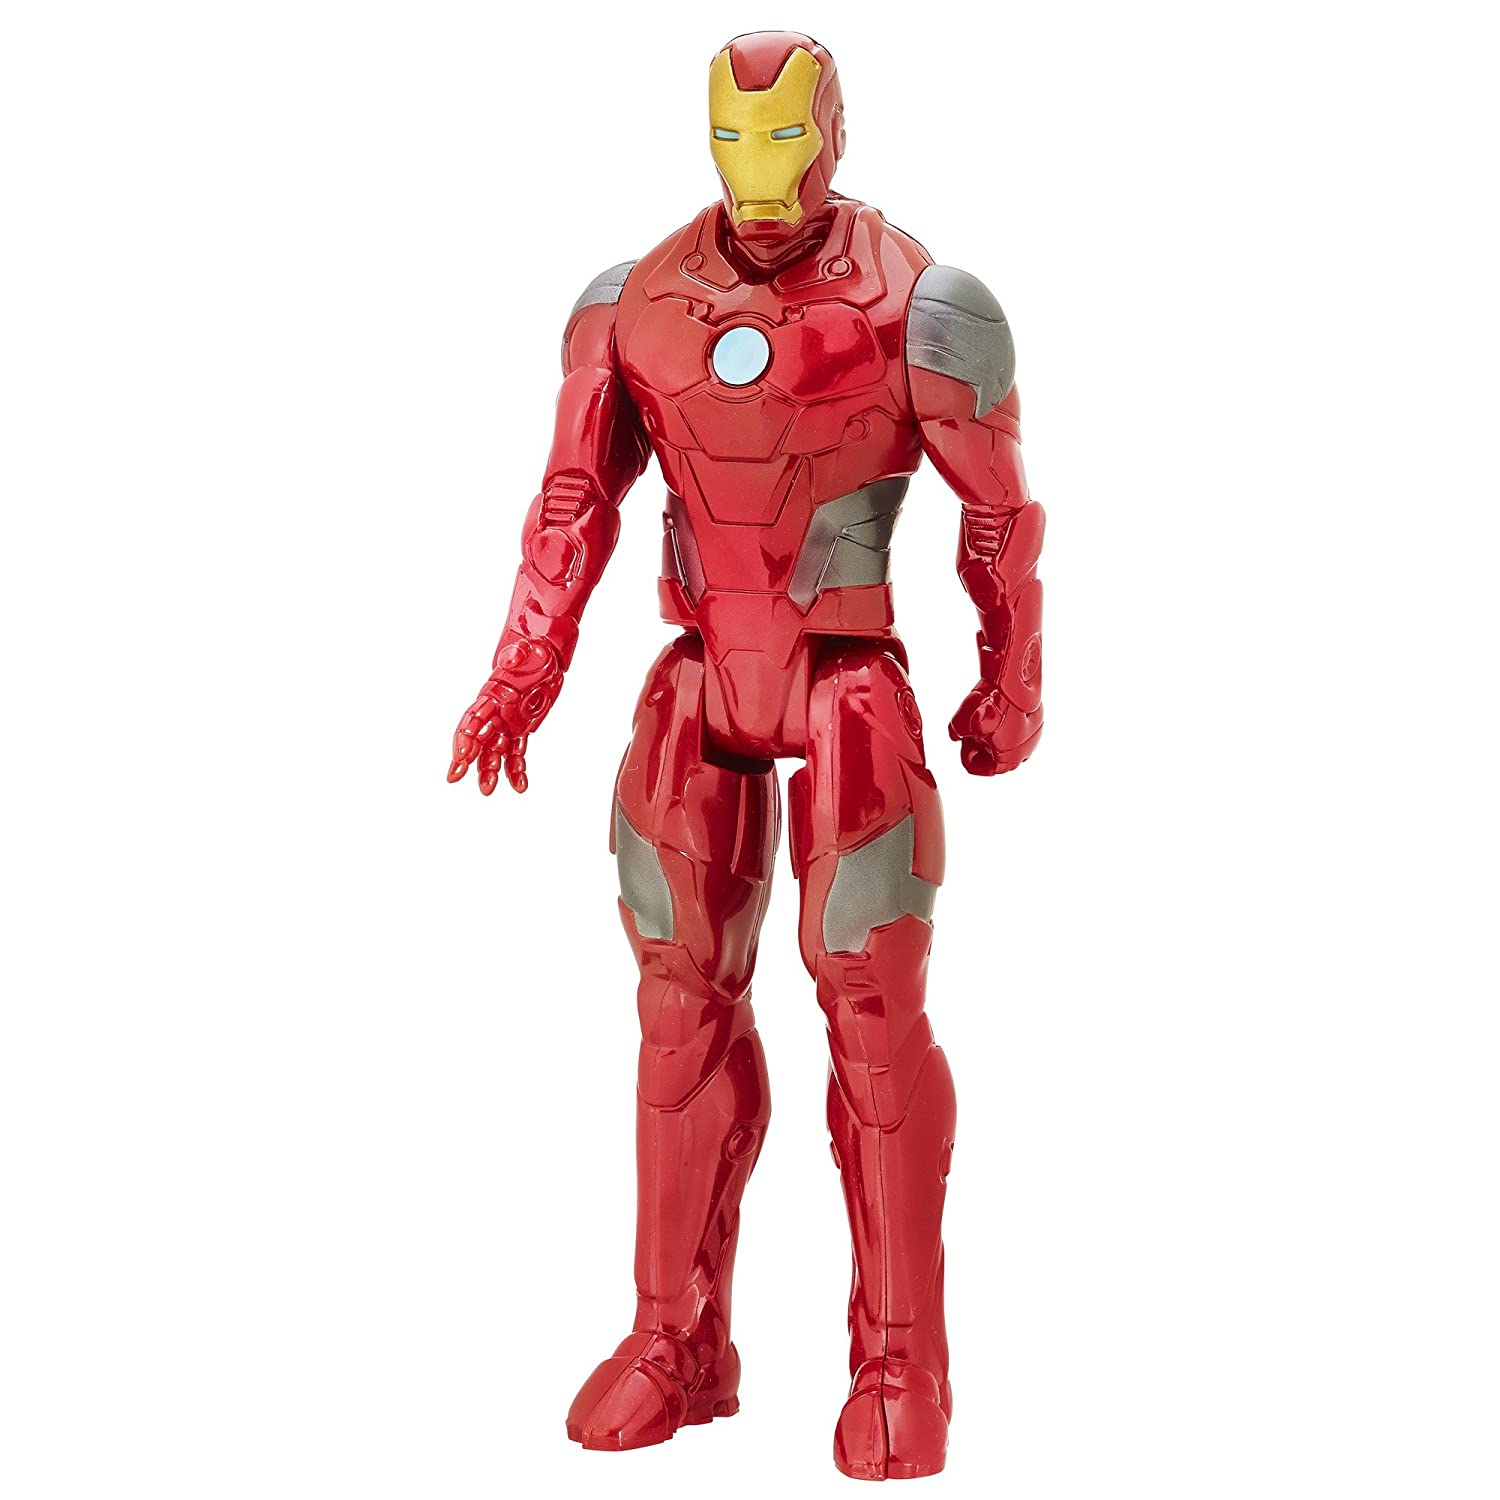 Marvel B3439AS0 Titan Hero Series Battle Suit Iron Man, Avengers Battlesuit Ironman